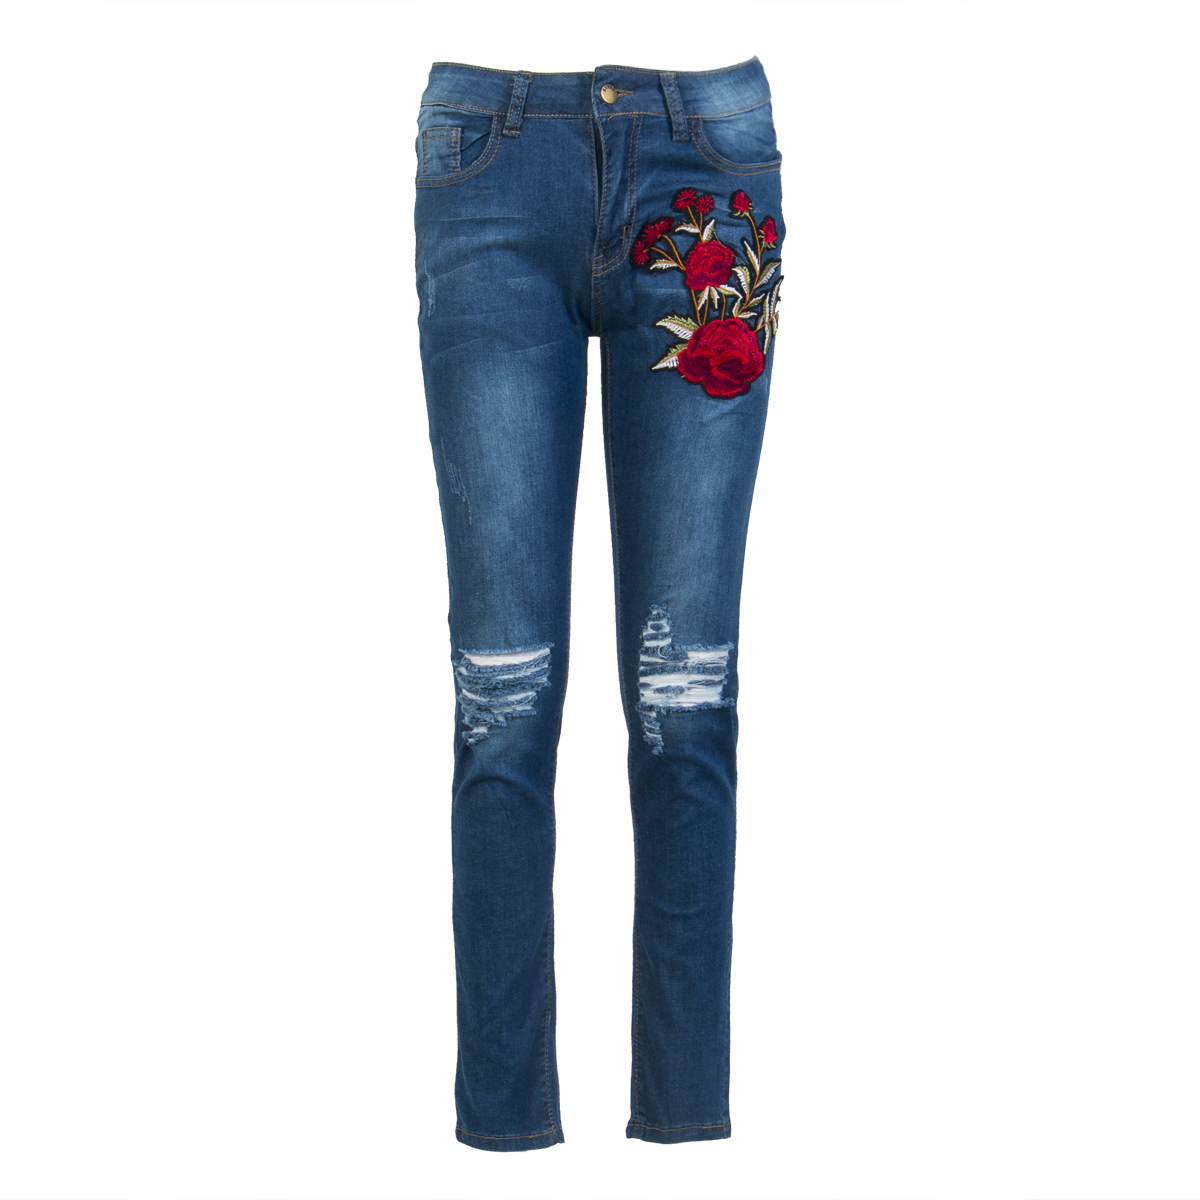 Plus Size Women Denim Skinny Pants High Waist Hole Stretch Trousers Slim Pencil Jeans Stylish Floral Embroidery Pencil Jeans